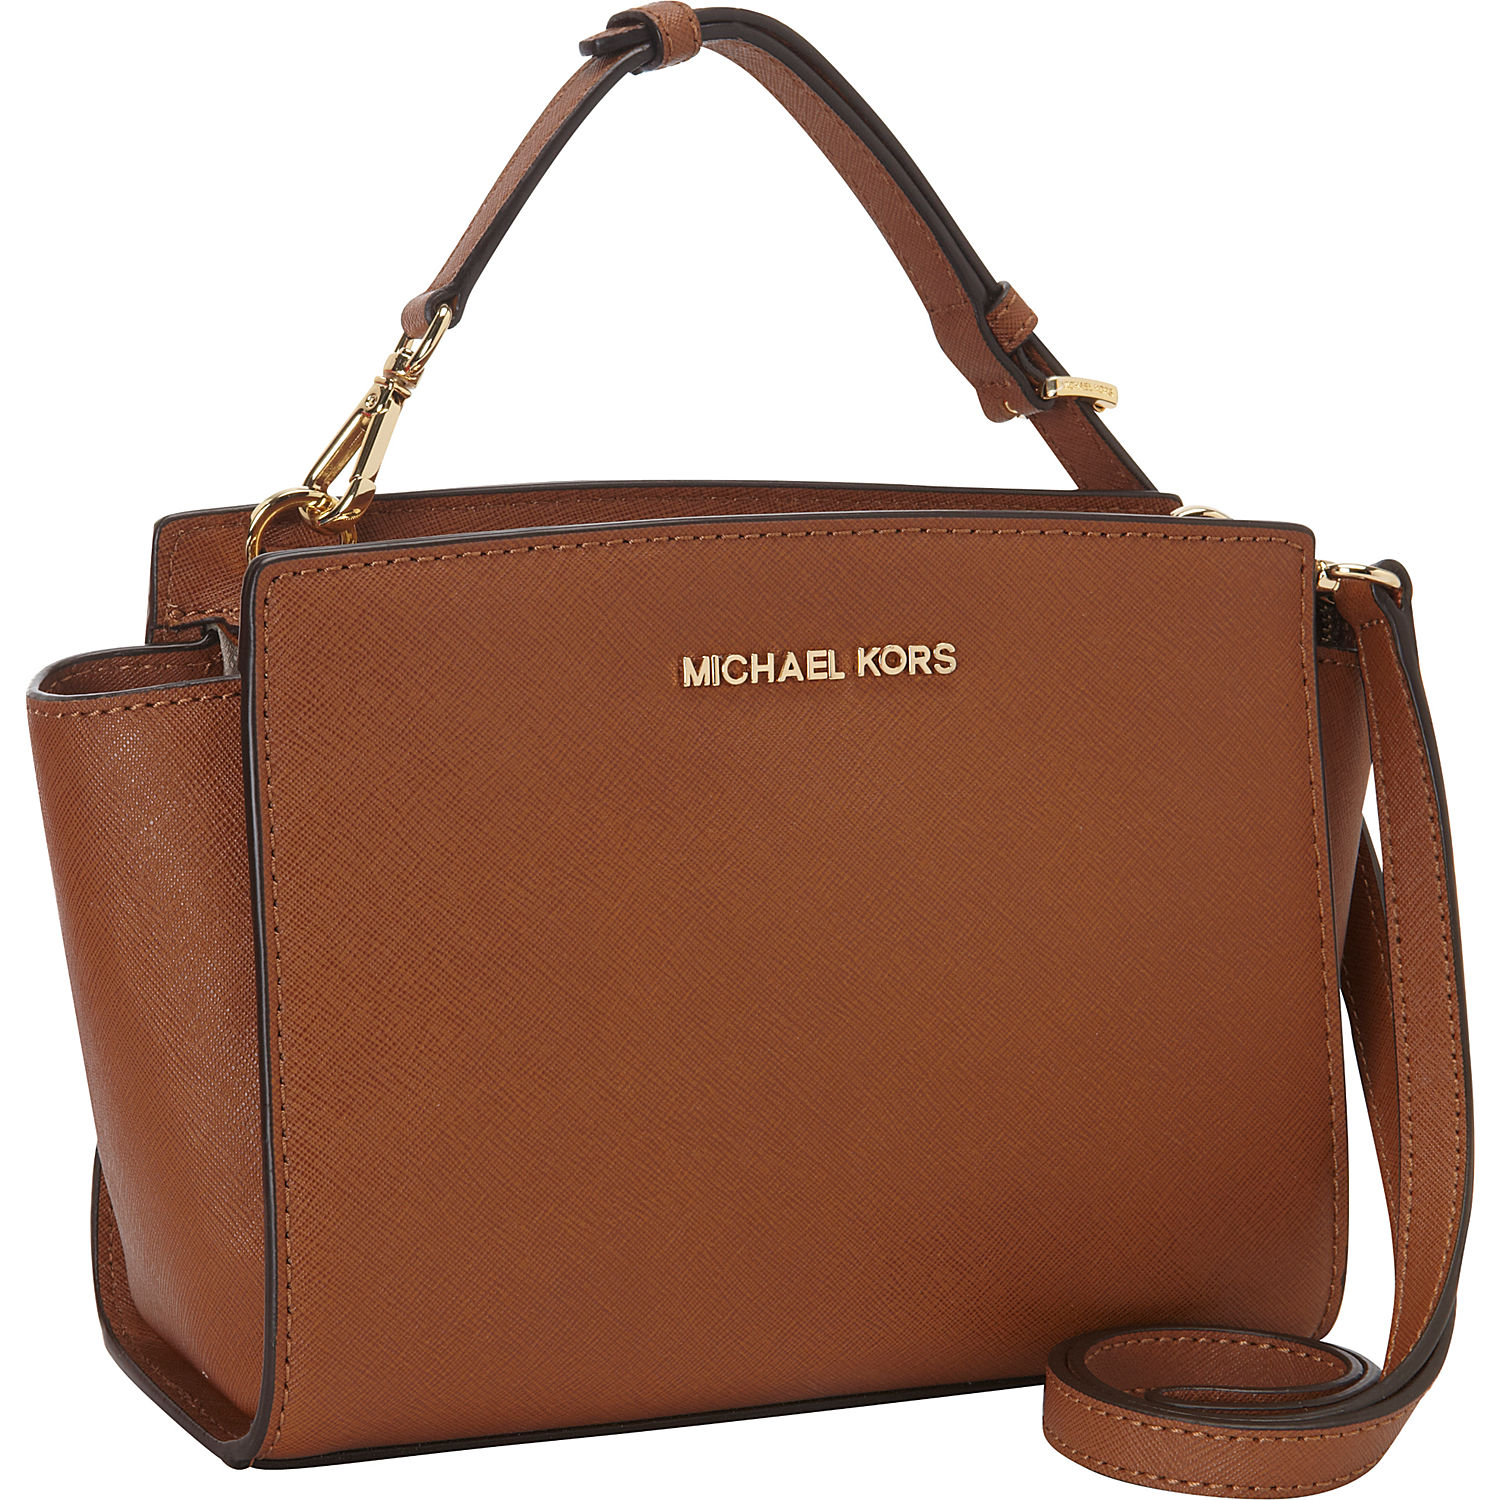 Tan Purse Michael Kors Kelly Purses